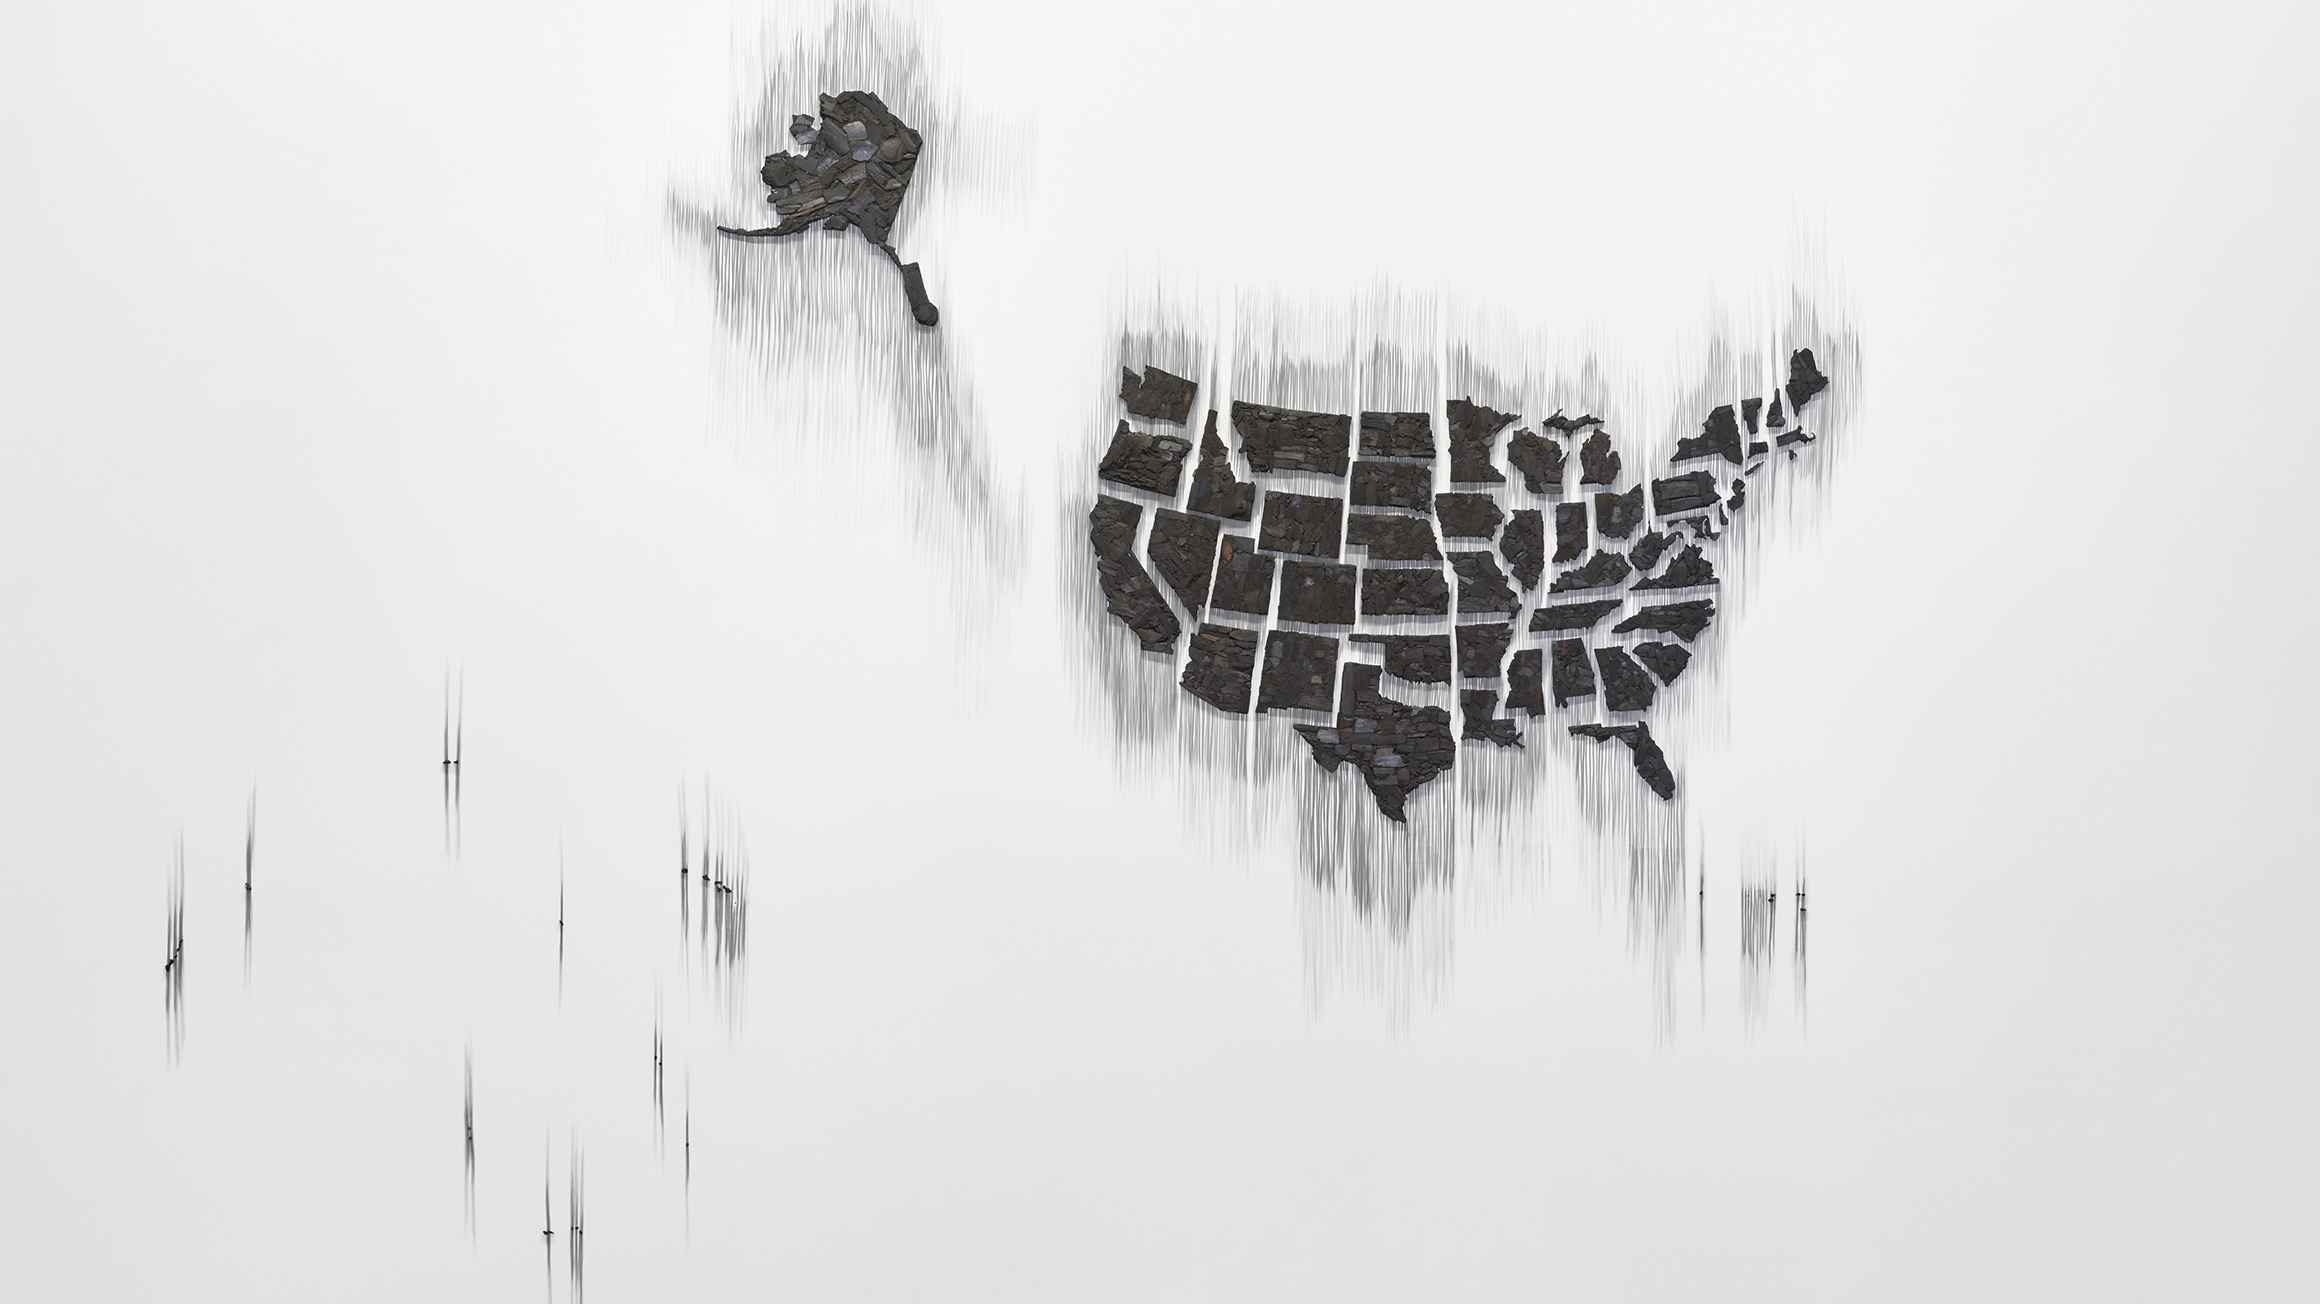 Fire (United States of the Americas), 2017/2020, by Teresita Fernández